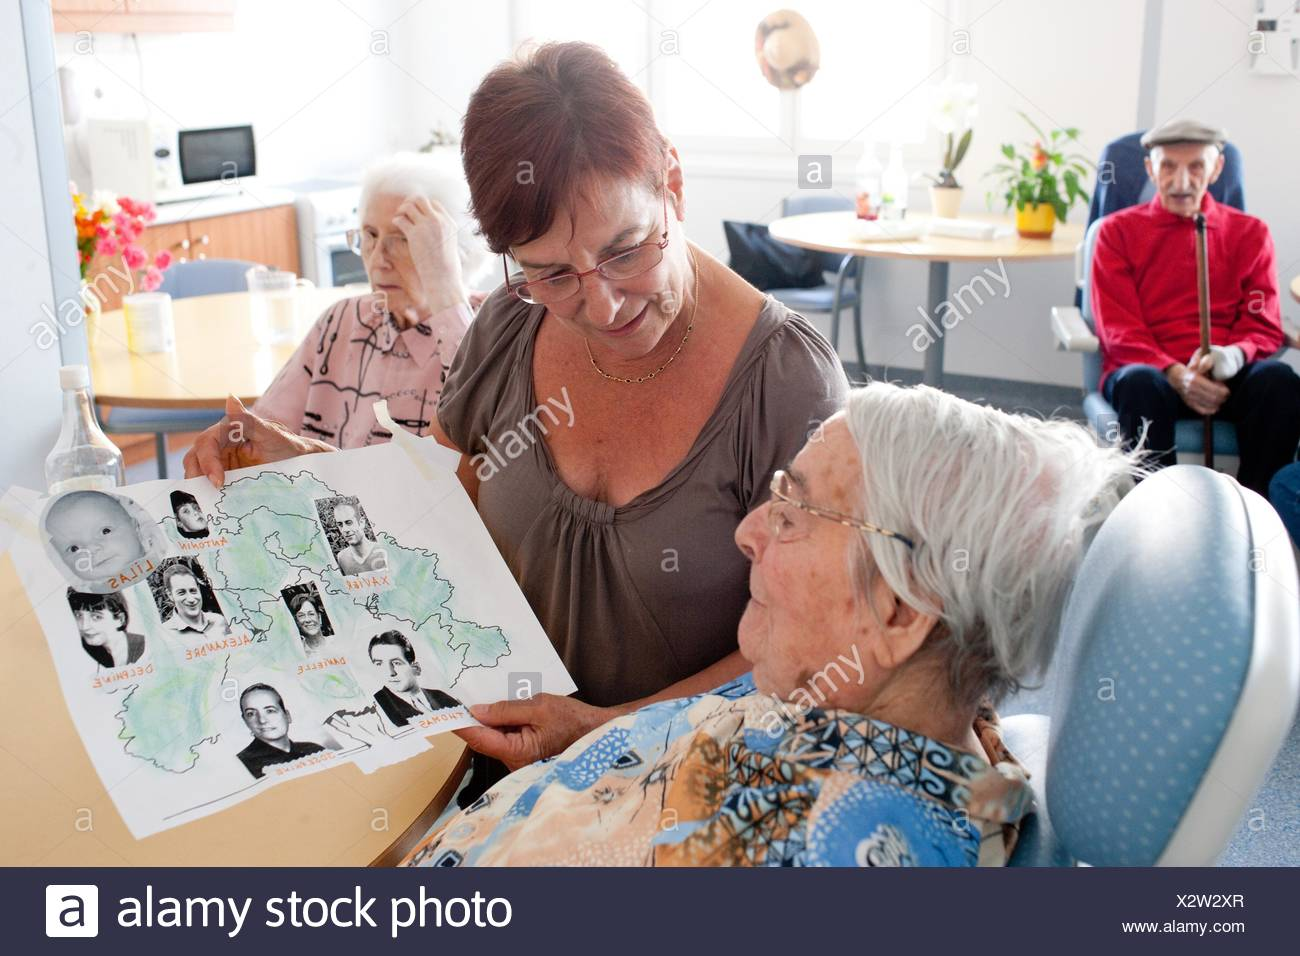 Elderly Person With The Disease Of Alzheimer S And Her